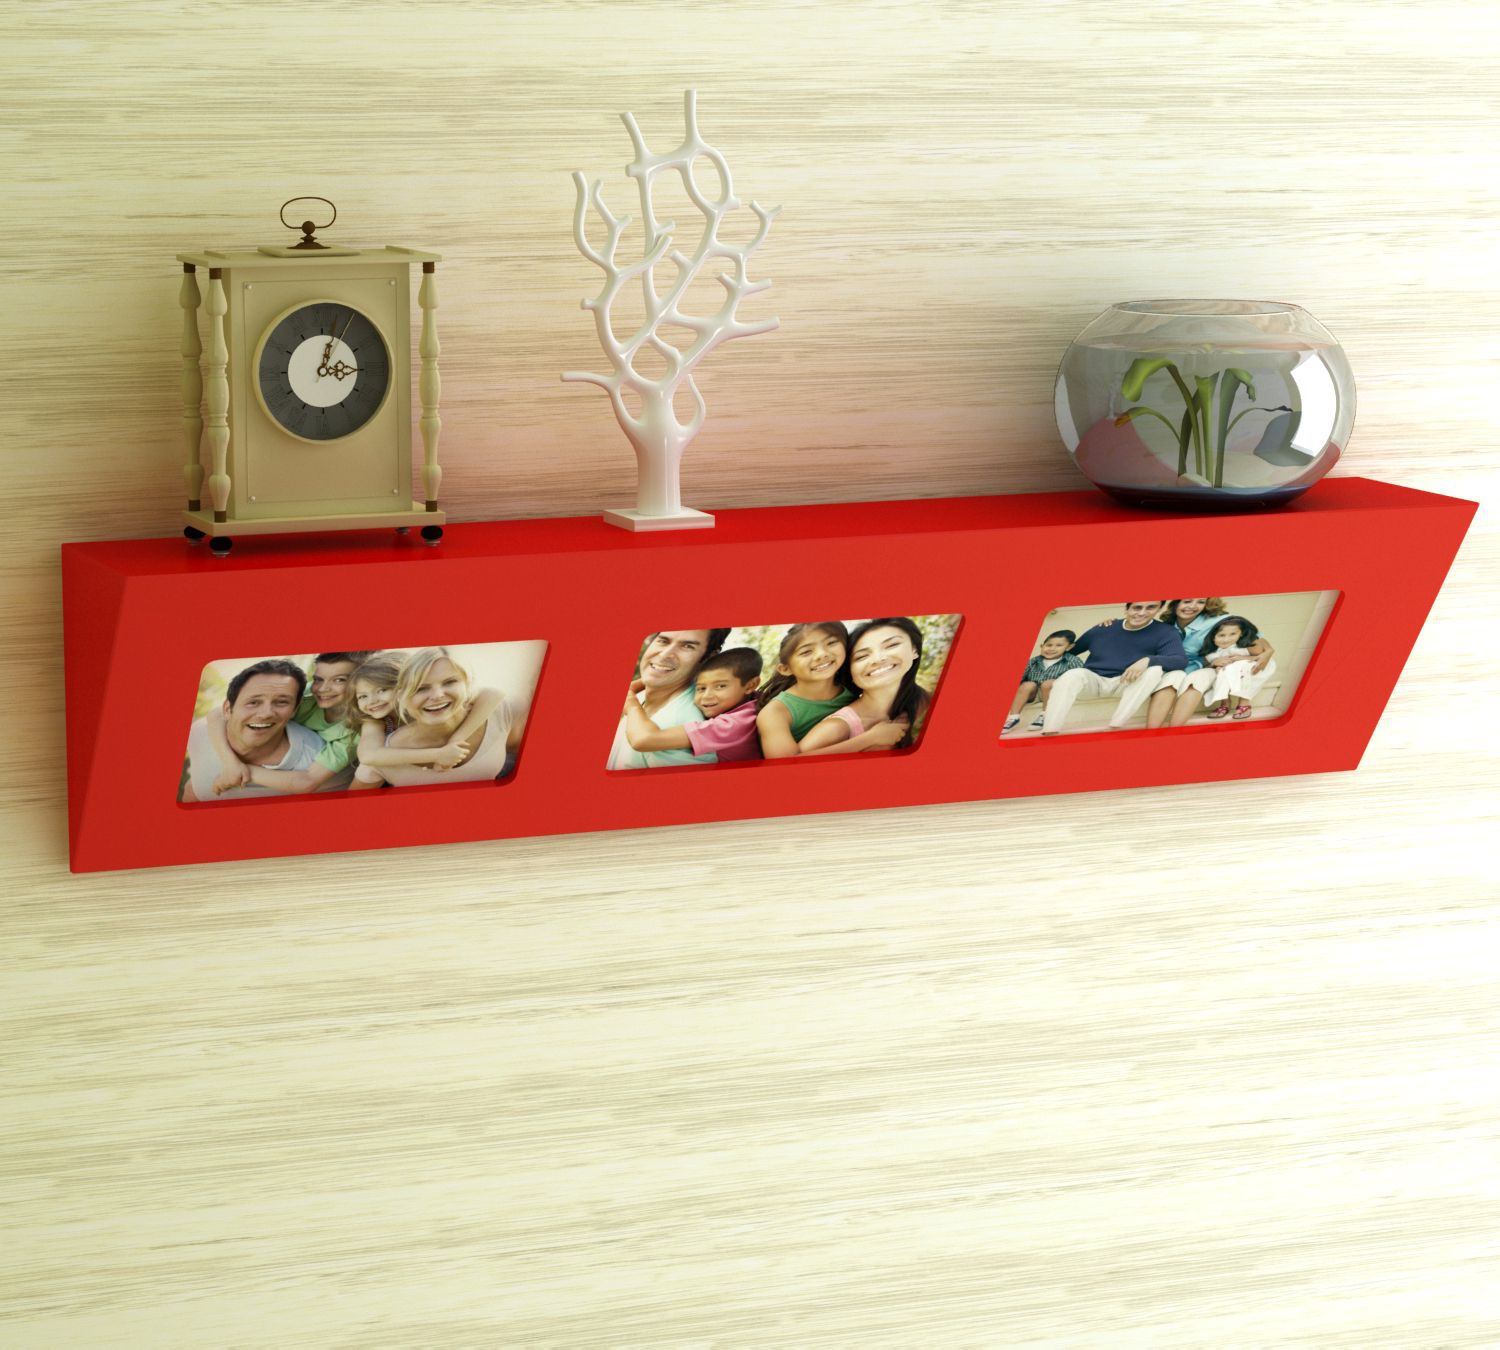 Home Sparkle MDF Photo frame wall shelf For Wall Décor -Suitable For Living Room/Bed Room (Designed By Craftsman)